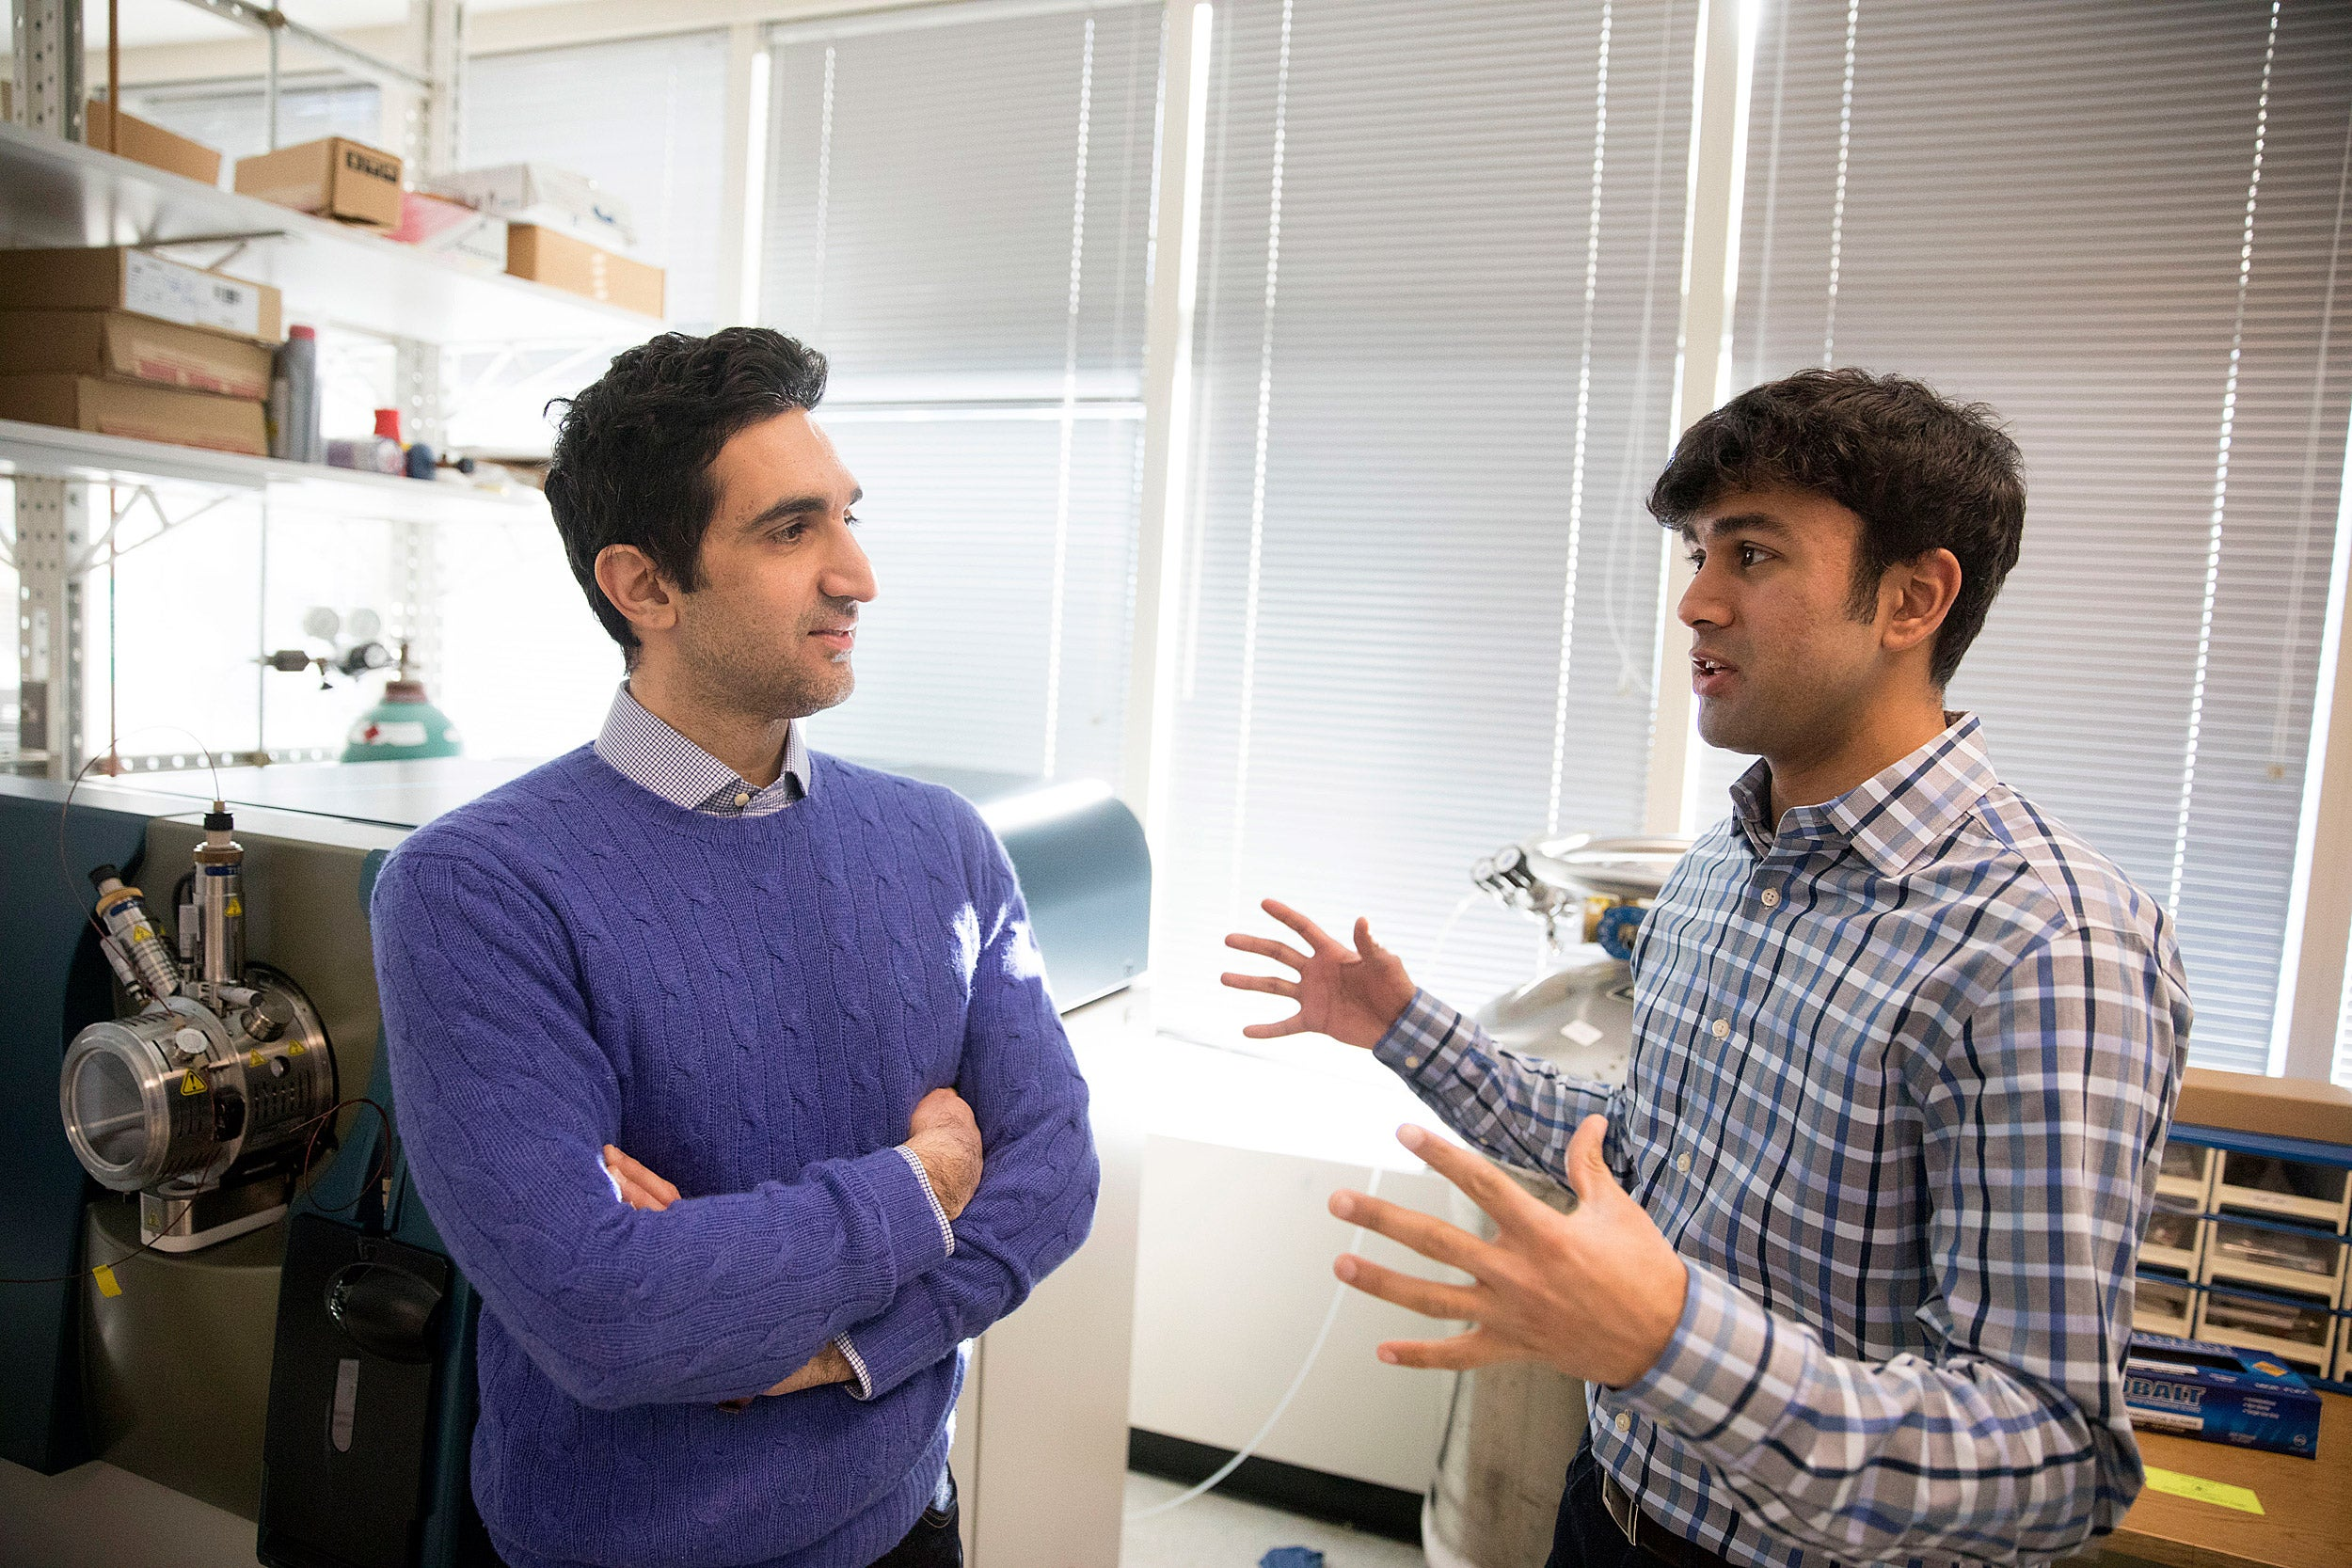 Nima Saeidi (left) and Gautham Sridharan are working to understand the changes that occur in the body after Roux-en-Y surgery, which can include curing diabetes, changes in taste perception, and other benefits not directly linked to weight loss.